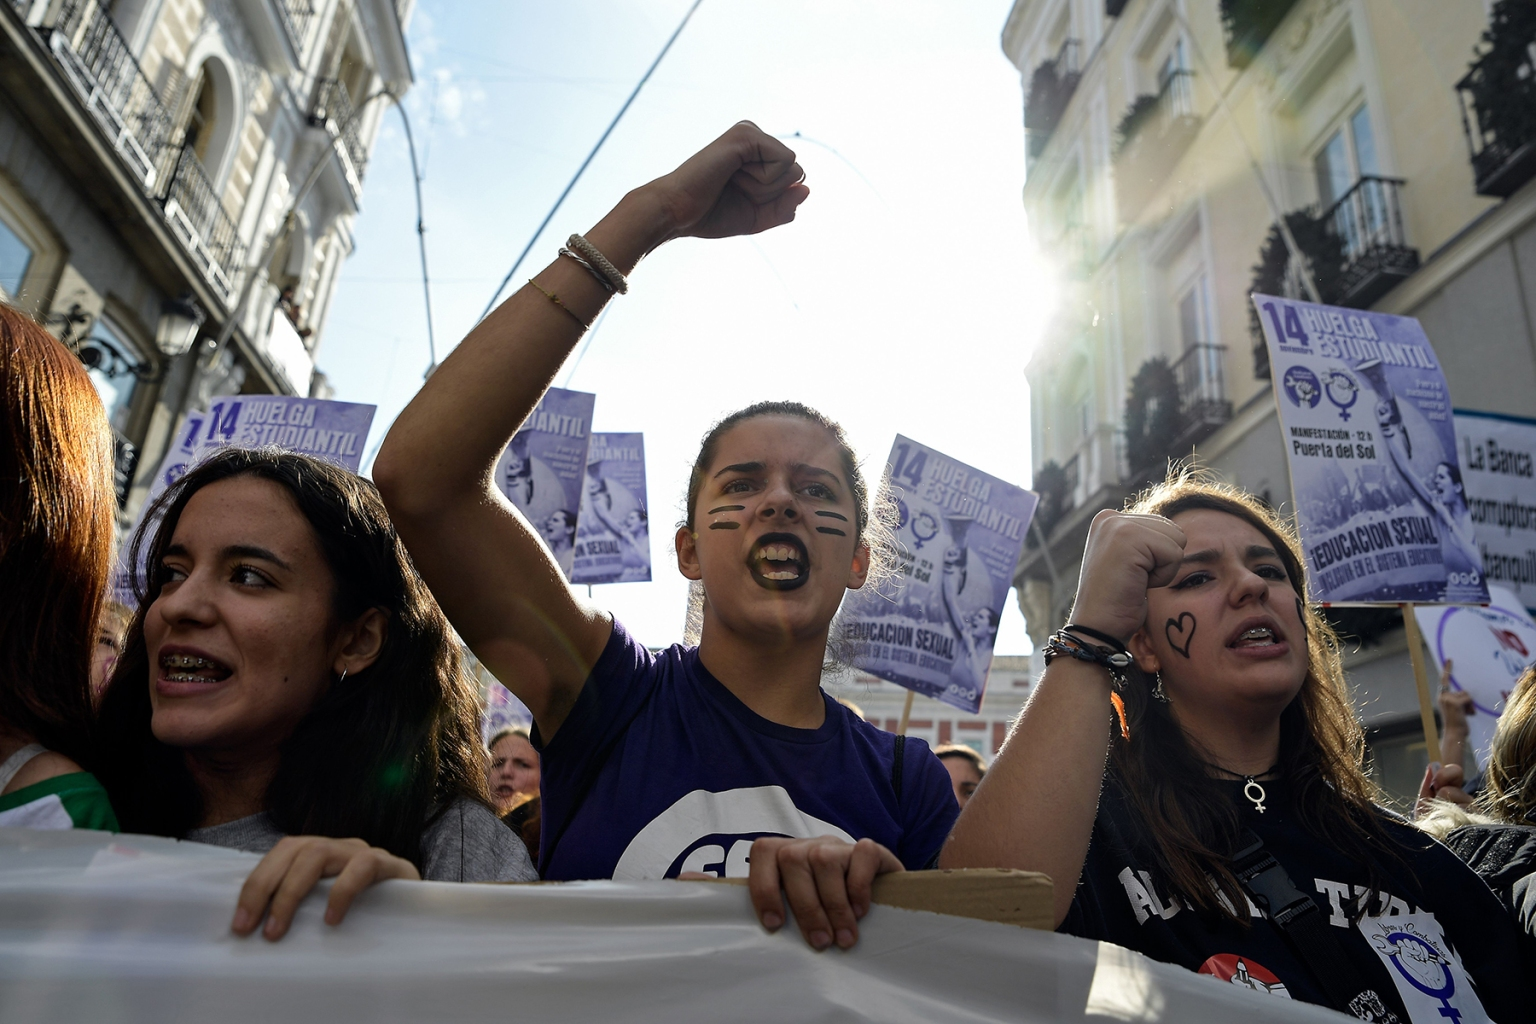 Spanish protesters hold placards and shout slogans during a demonstration against machismo and sexism in classrooms, marking a strike day called by students in Madrid on Nov. 14. OSCAR DEL POZO/AFP/Getty Images